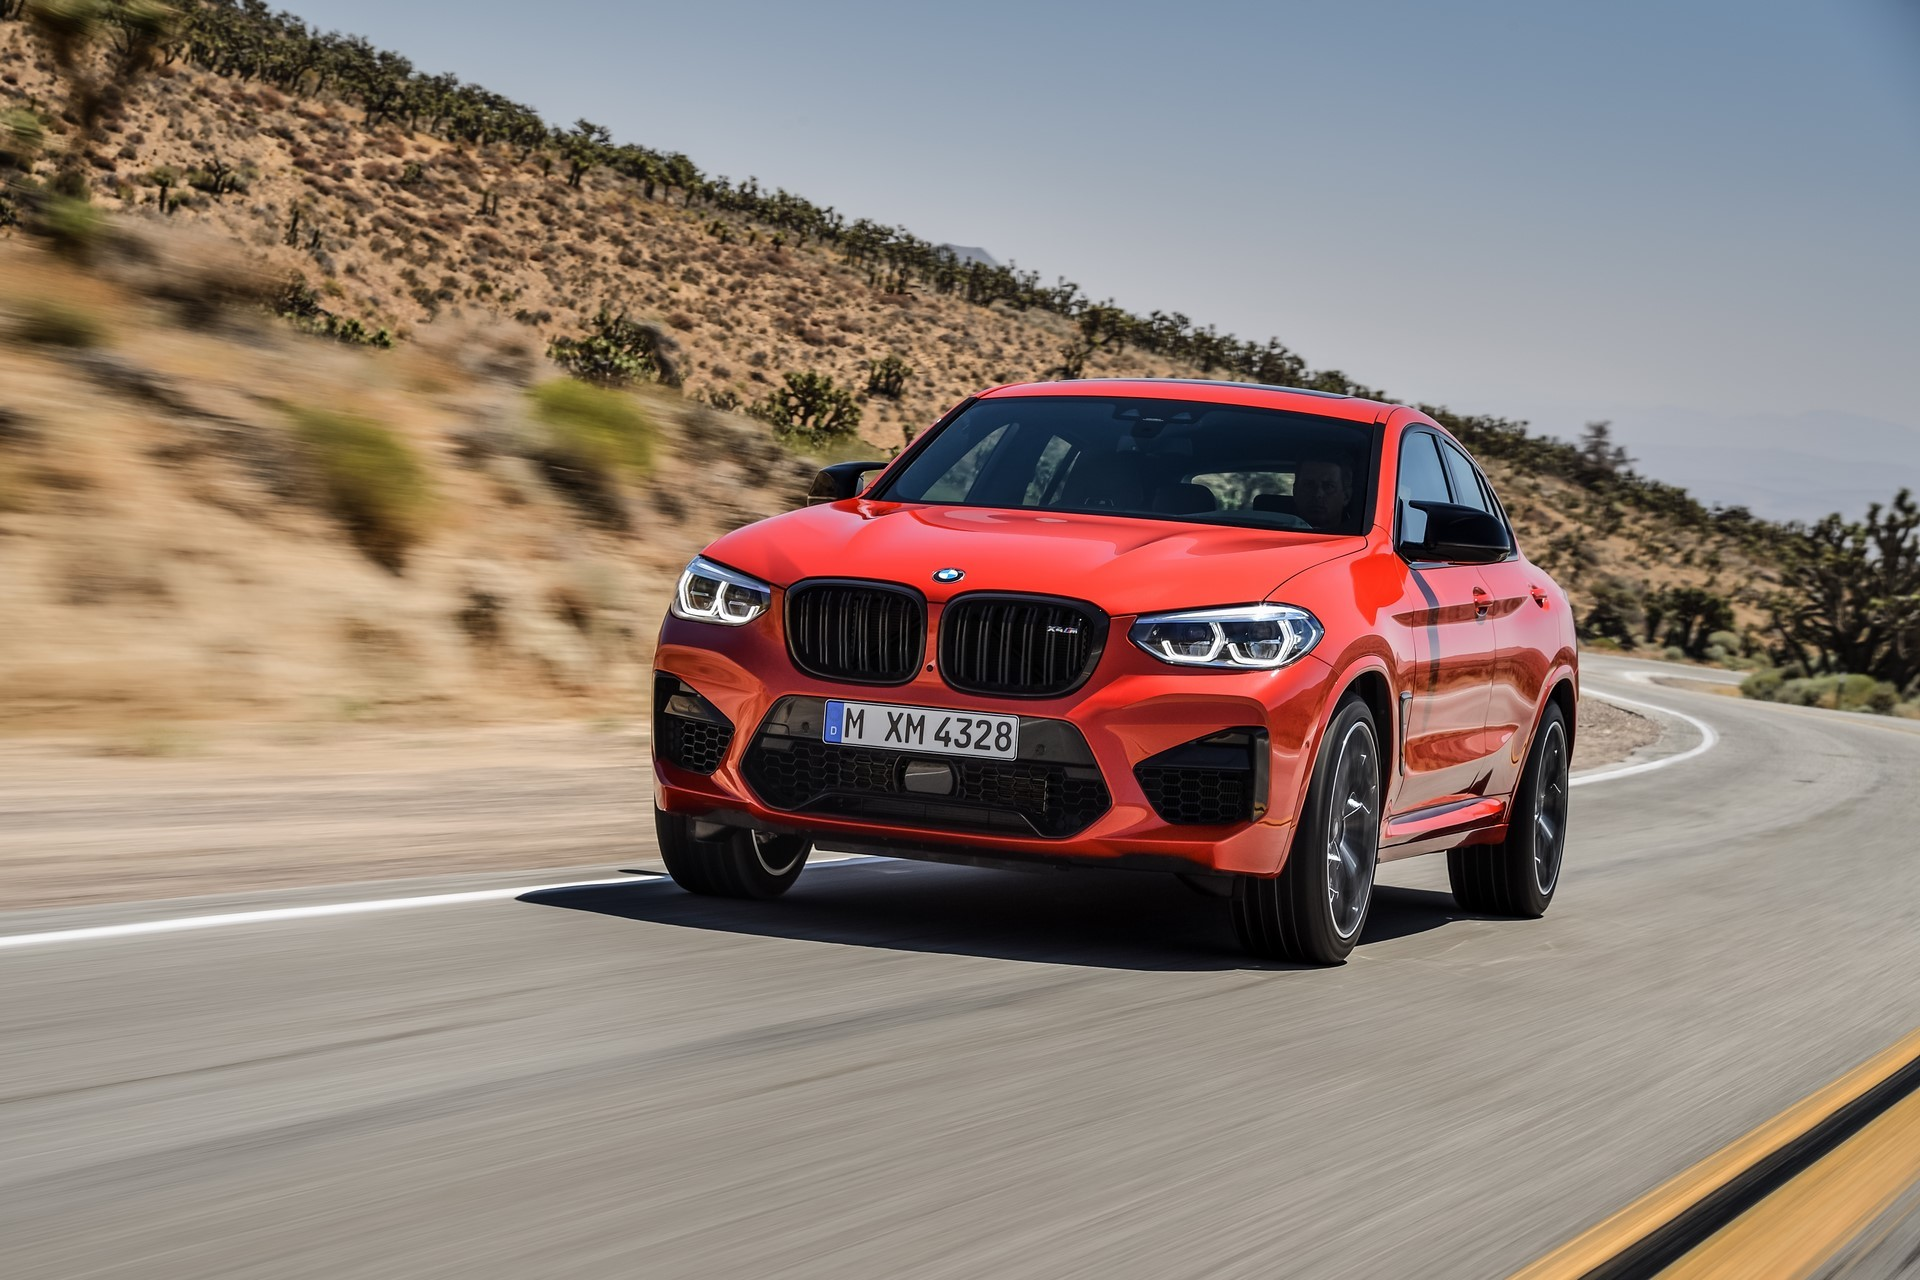 BMW X3 M and X4 M 2019 (82)